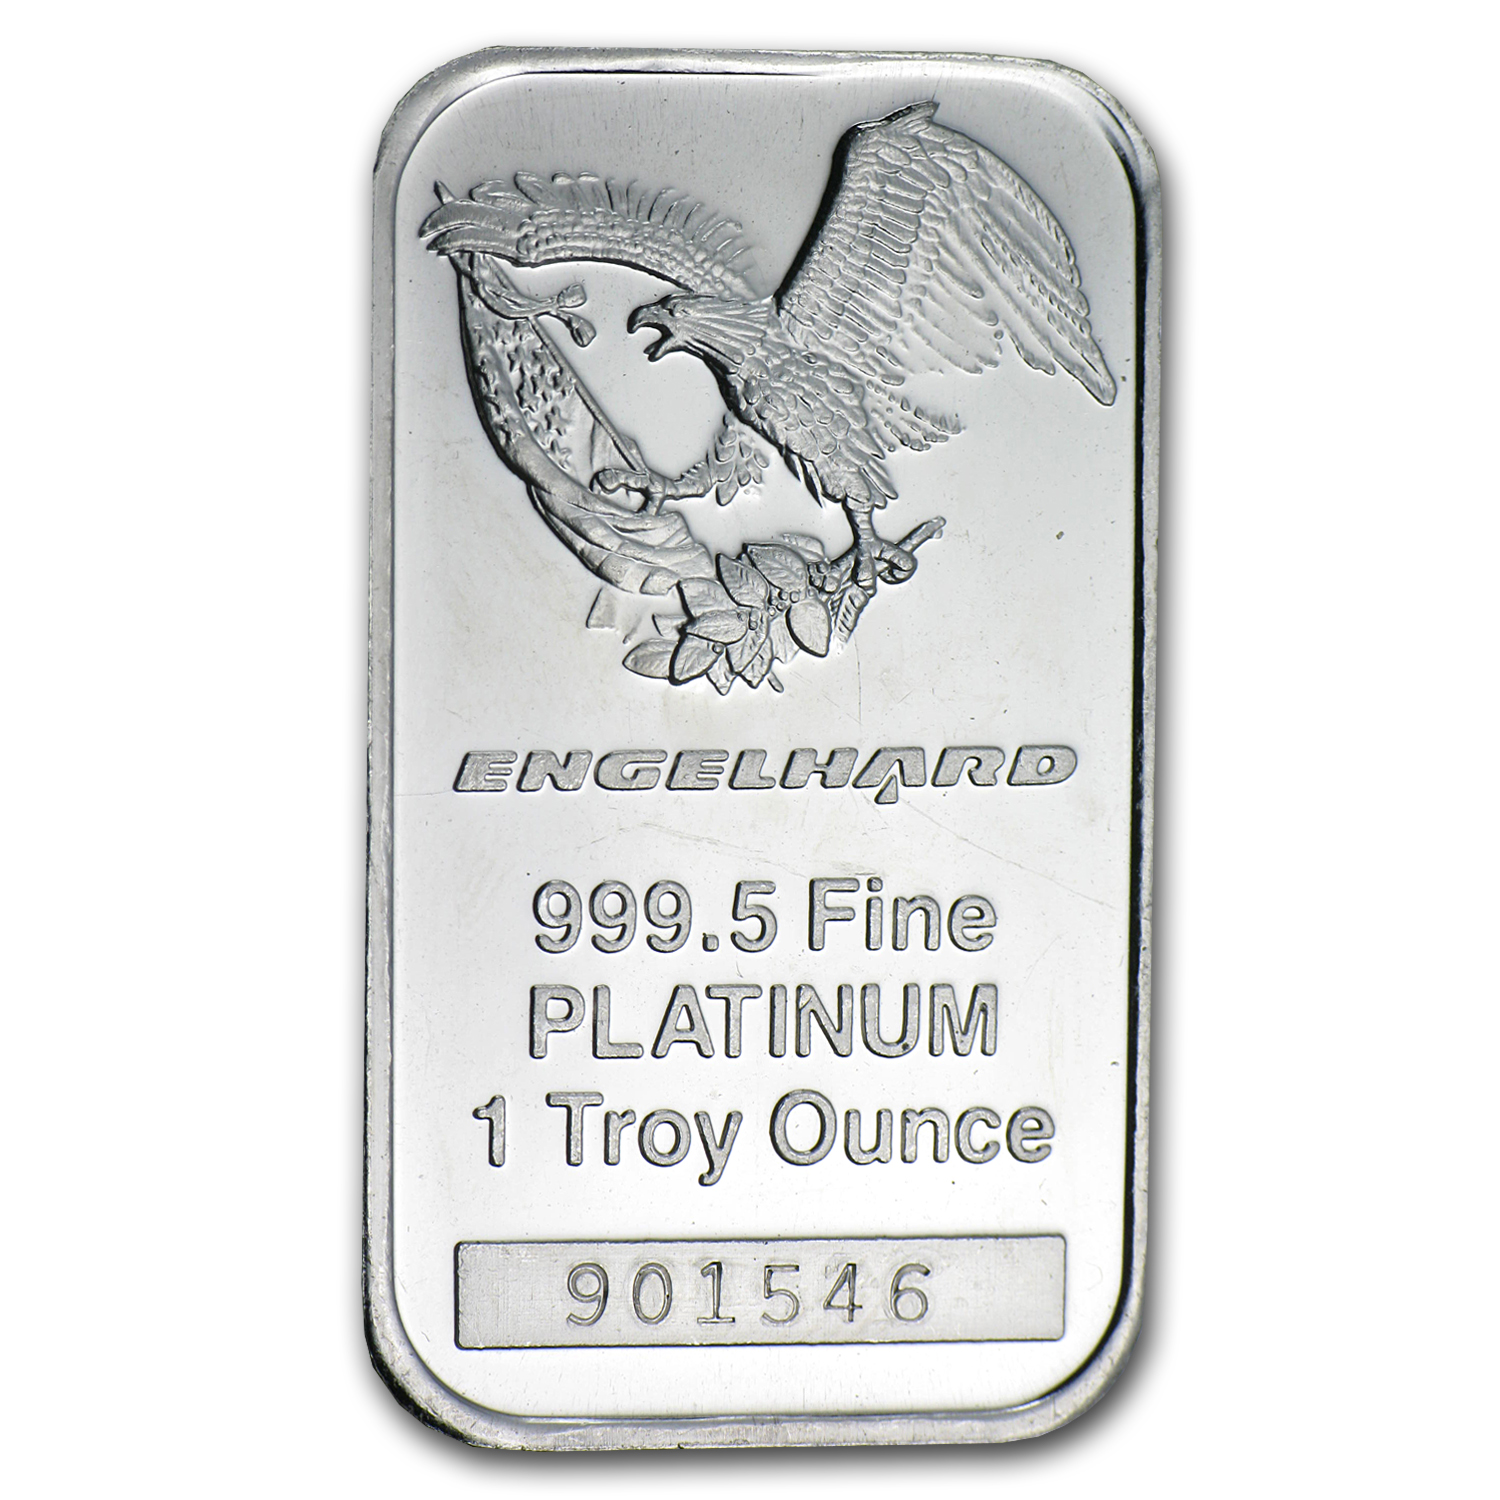 1 oz Engelhard Platinum Bar .9995 Fine ('Eagle' logo, No Assay)